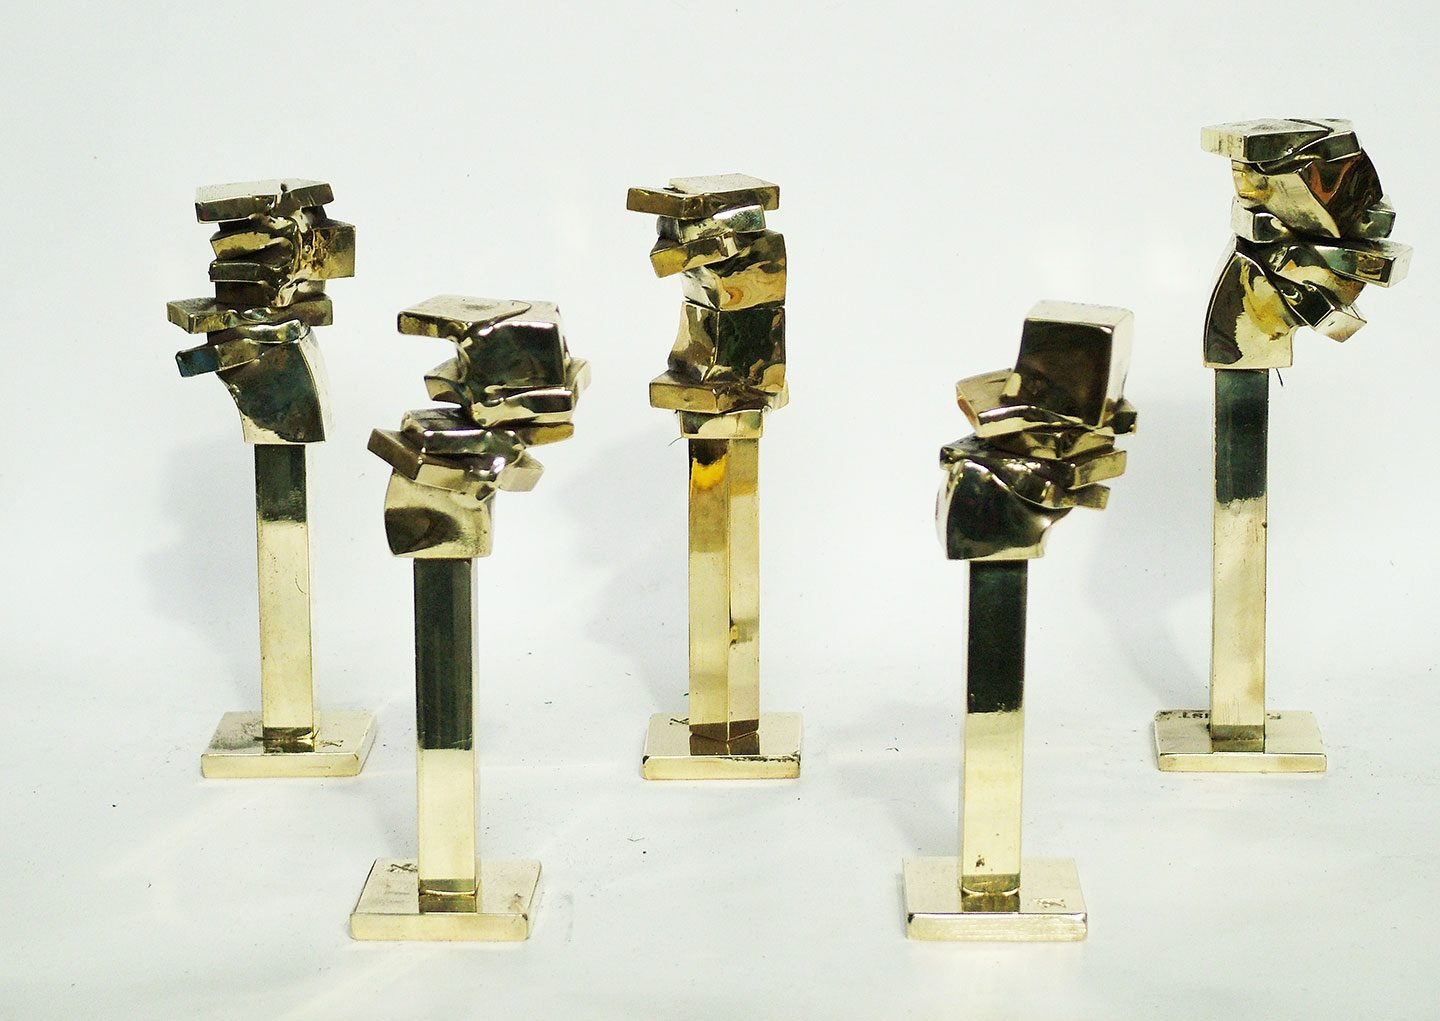 polished-little-brass-pillars.jpg